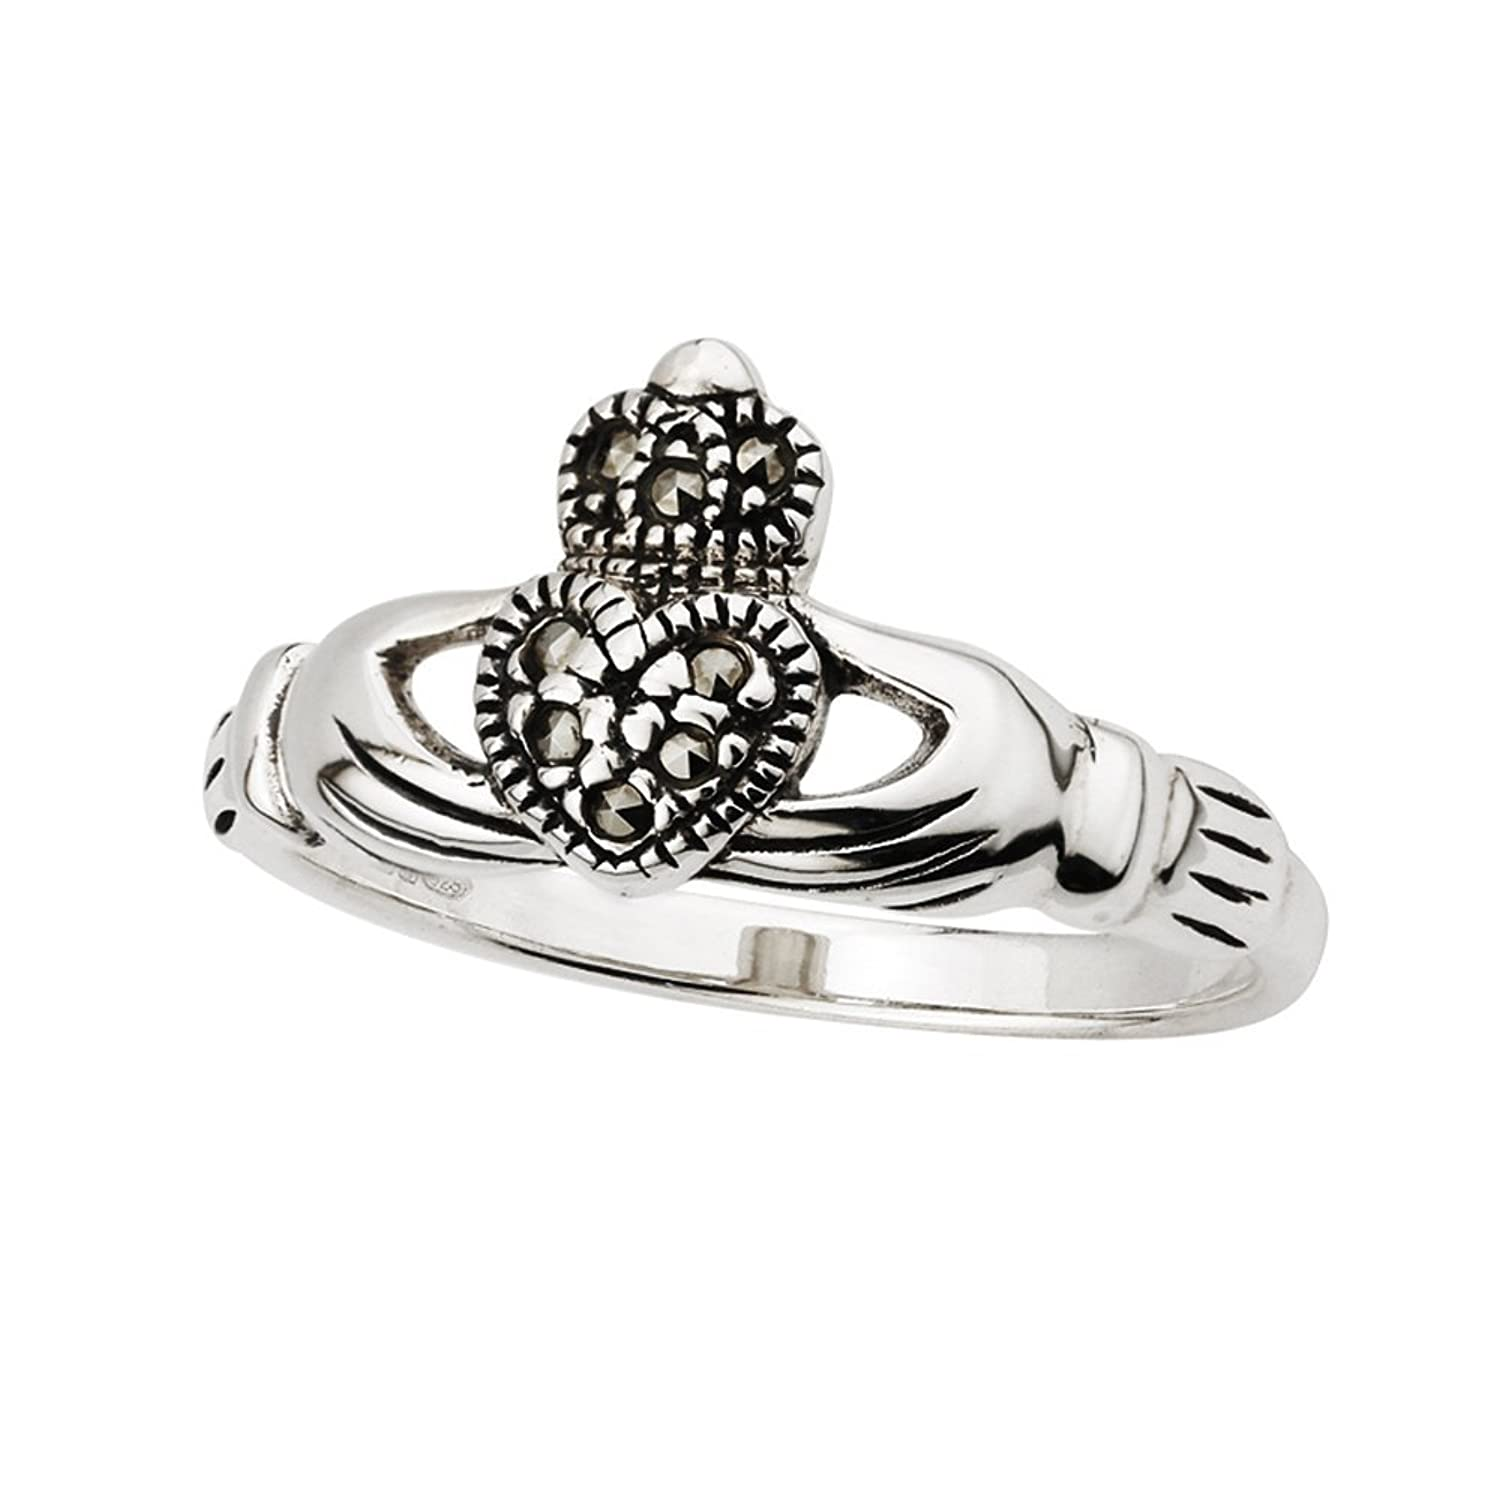 Claddagh Ring Sterling Silver & Marcasite Sz 7.5